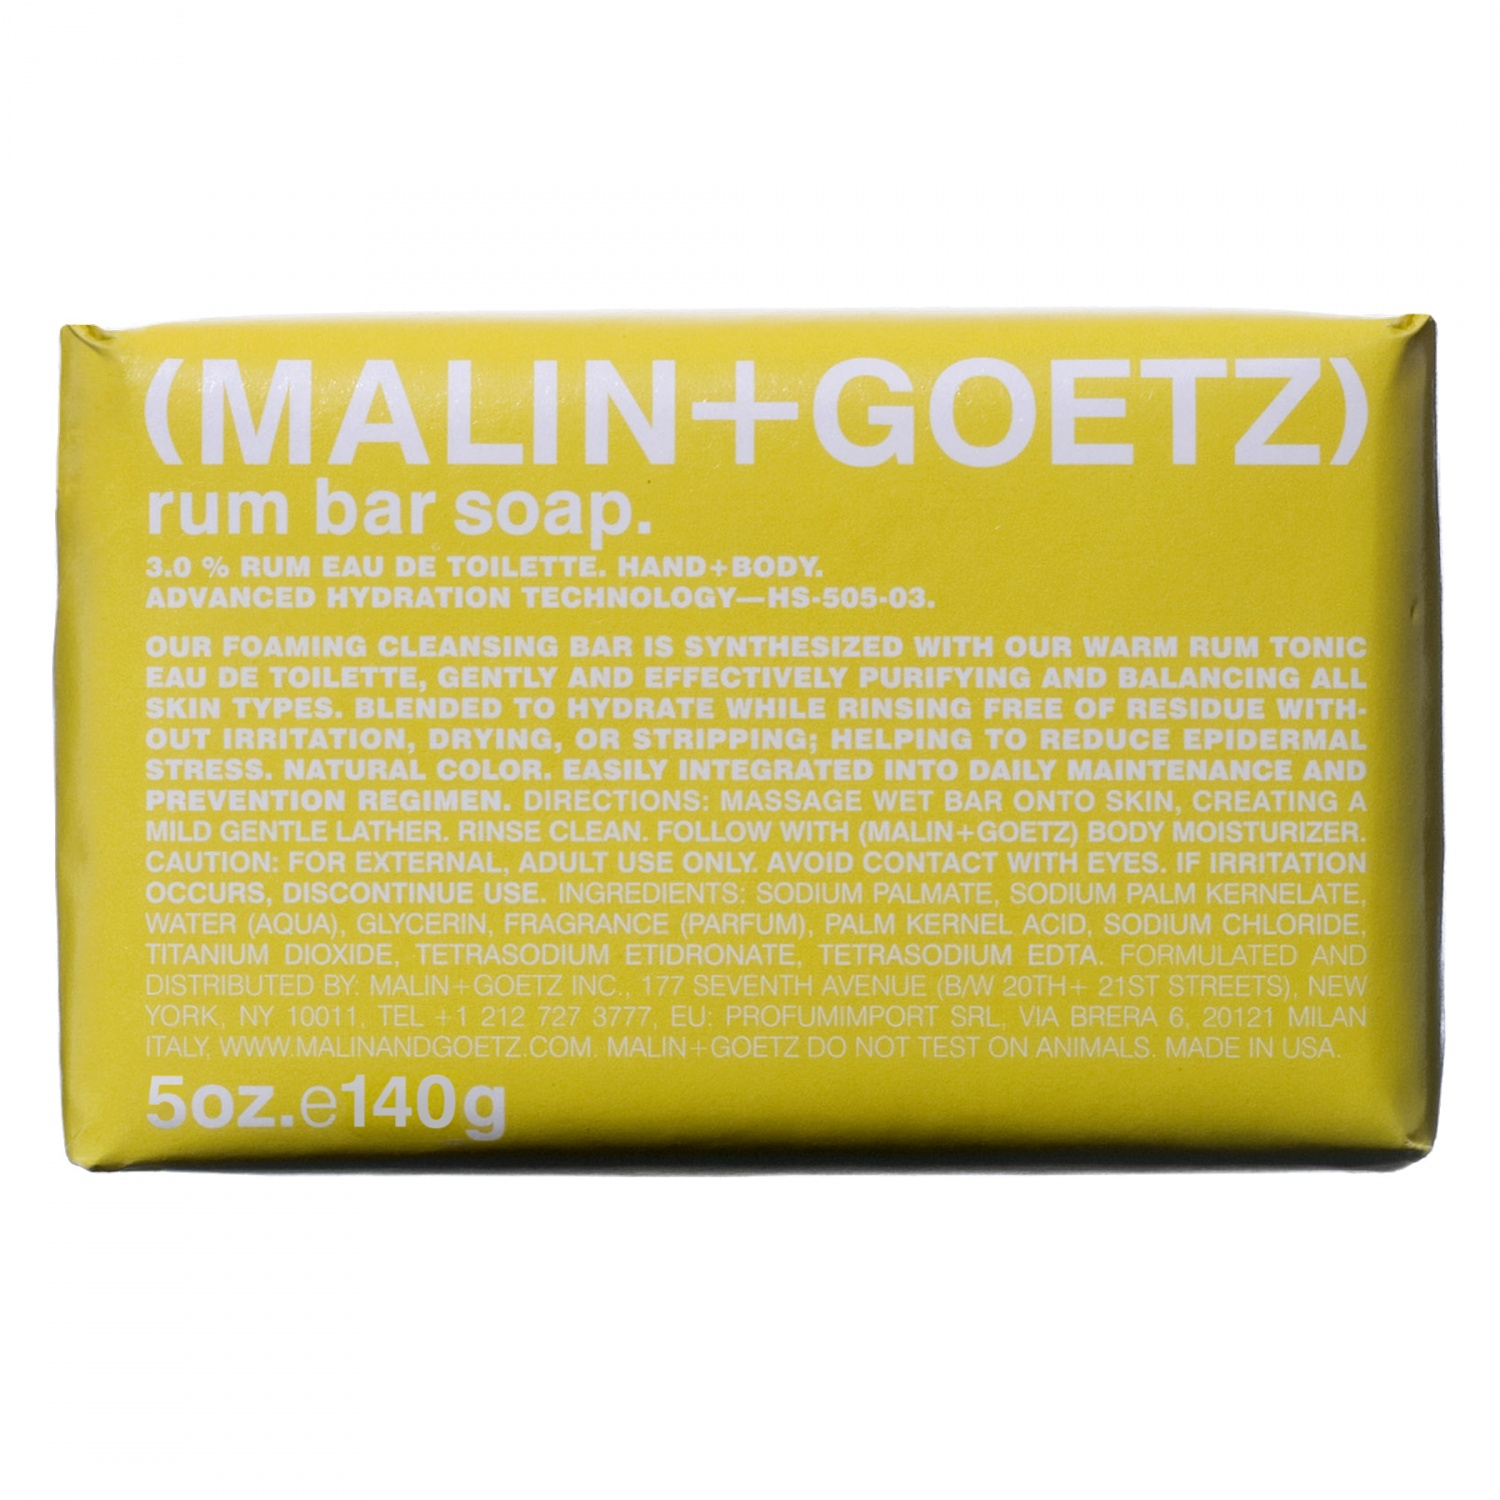 MALIN+GOETZ rum bar soap 140gr.